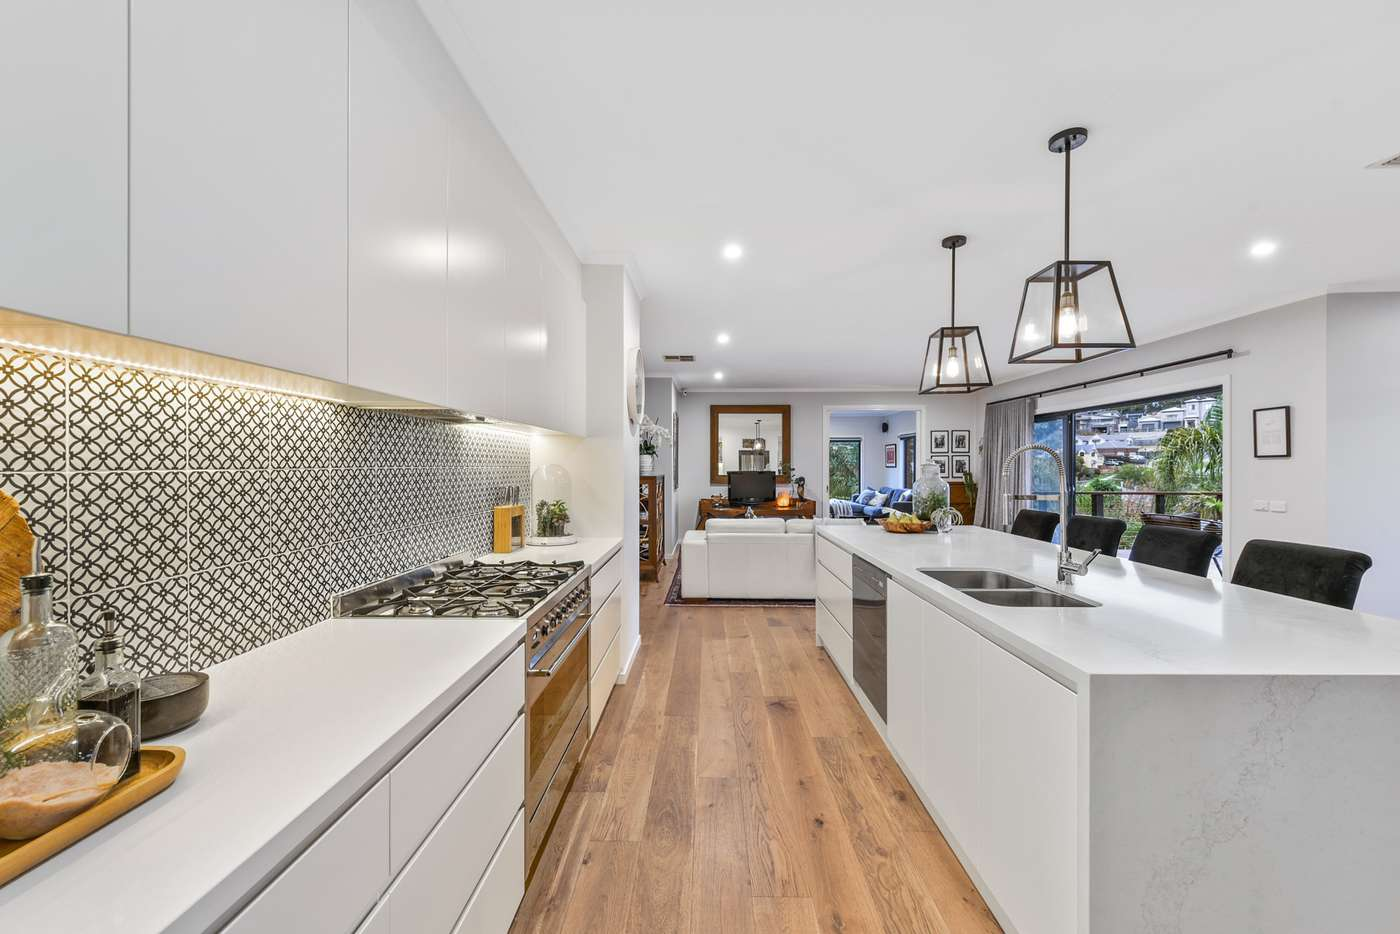 Fifth view of Homely house listing, 19 Tranquillity Place, Beaconsfield VIC 3807